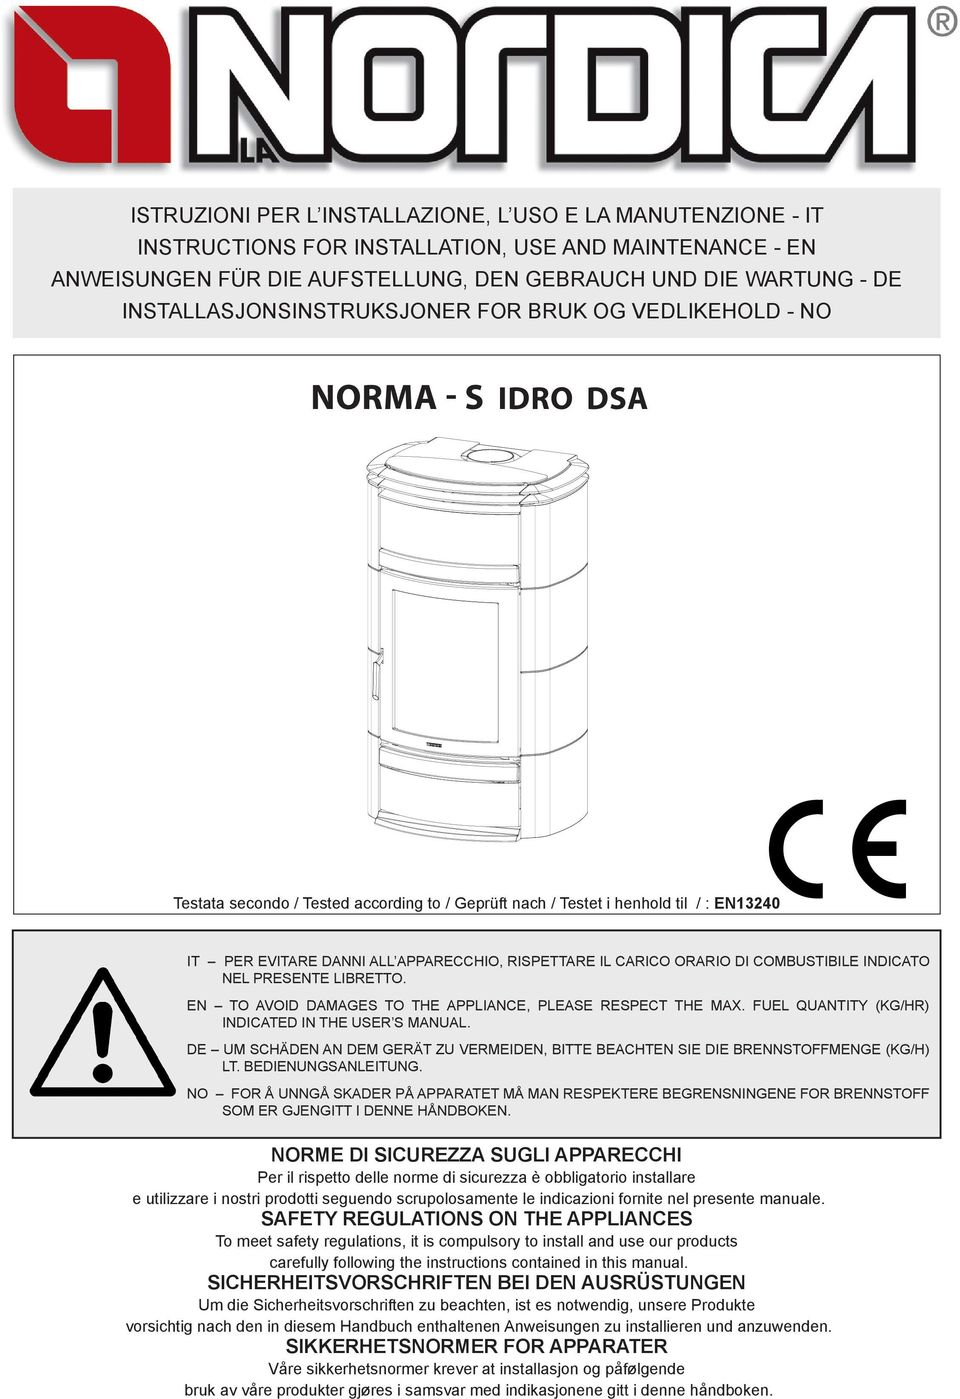 APPARECCHIO, RISPETTARE IL CARICO ORARIO DI COMBUSTIBILE INDICATO NEL PRESENTE LIBRETTO. EN TO AVOID DAMAGES TO THE APPLIANCE, PLEASE RESPECT THE MAX.